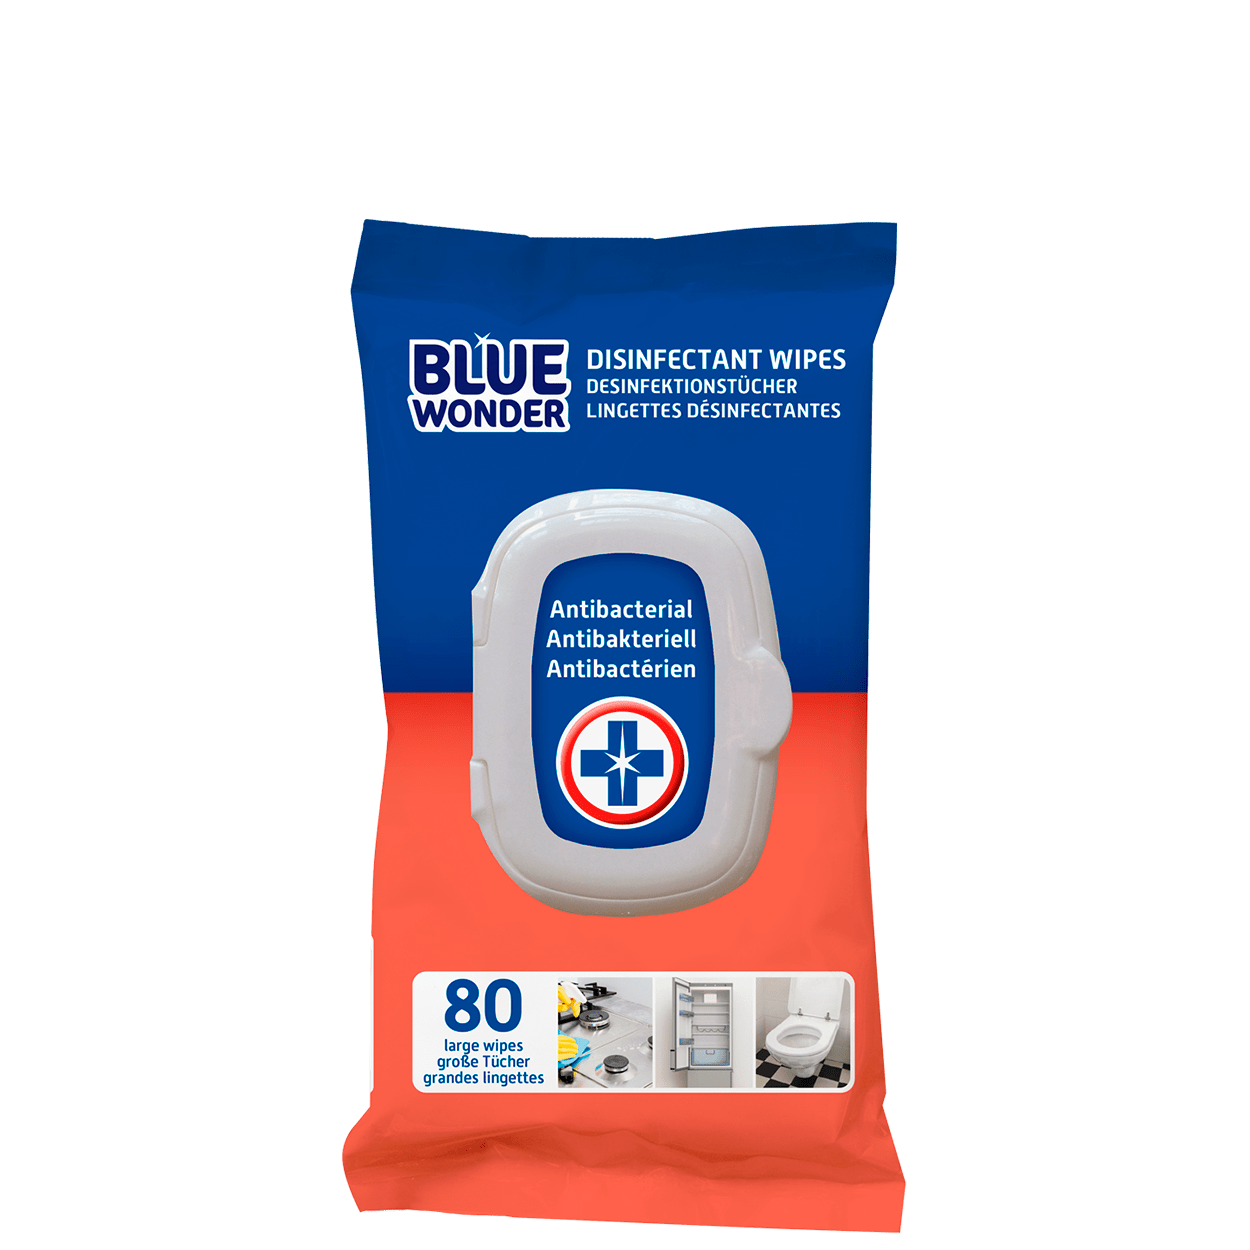 Blue Wonder Disinfectant Wipes, ideal for quick daily cleans and unique because they clean and disinfect at the same time. Blue Wonder Disinfectant Wipes are suitable for daily cleaning of counter tops, the toilet, the bathroom, door handles, tables, worktops, the fridge, toys and much more. Chlorine-free. Ready to use. Please note: test the wipes on an inconspicuous area before use. Reseal the pack carefully after use. The wipes can be thrown away with your household waste.